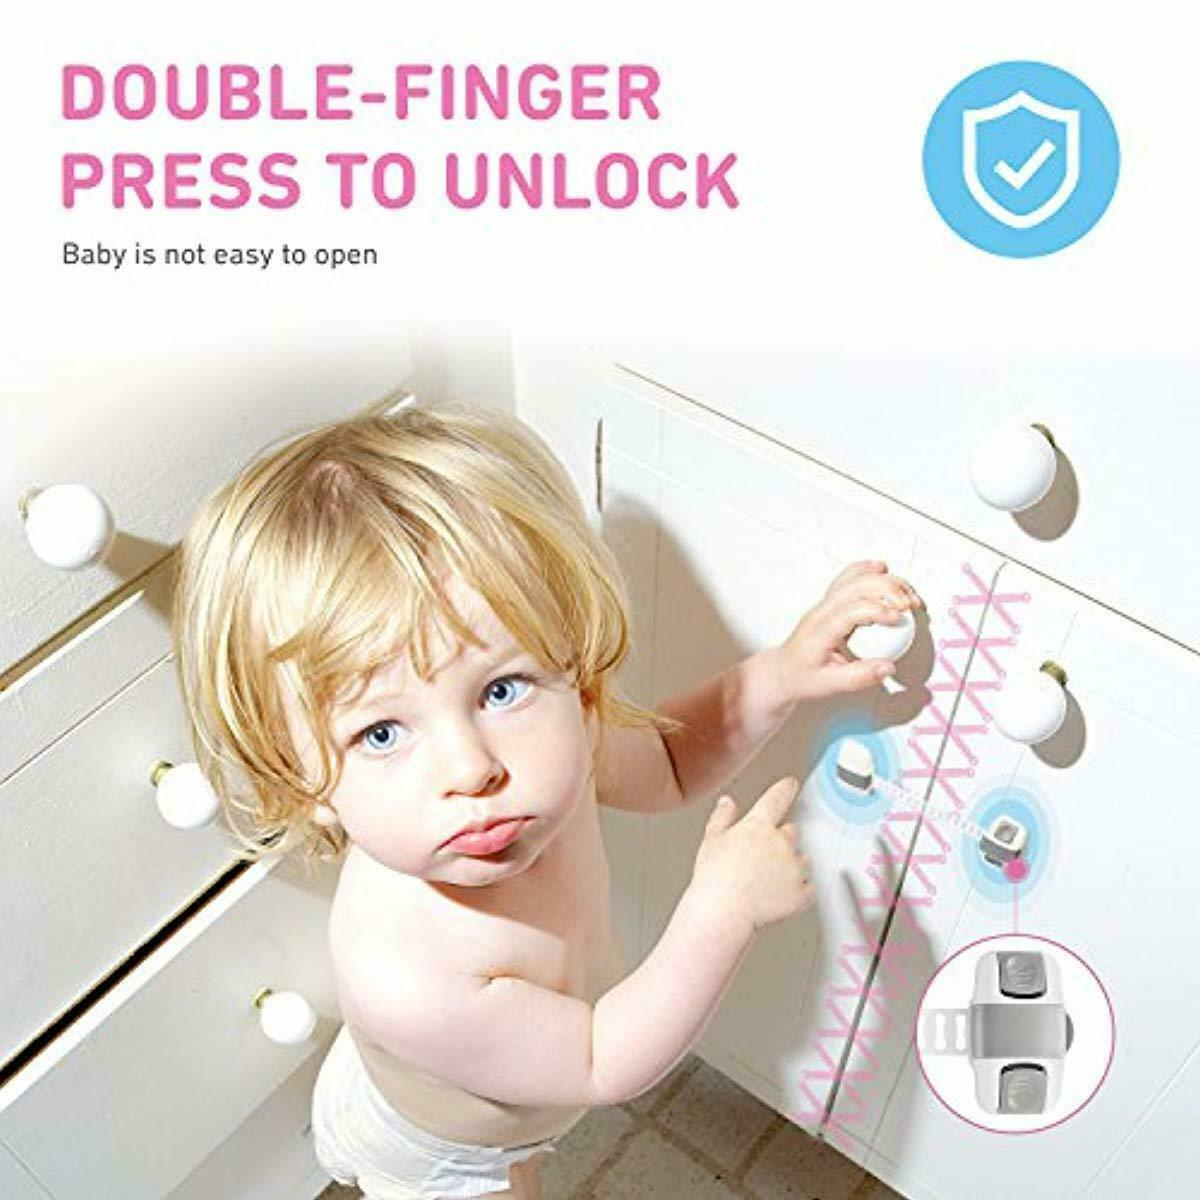 Child Safety Cabinet Locks [6 Pack] |Child Proof Safety Lock with Double-Finger